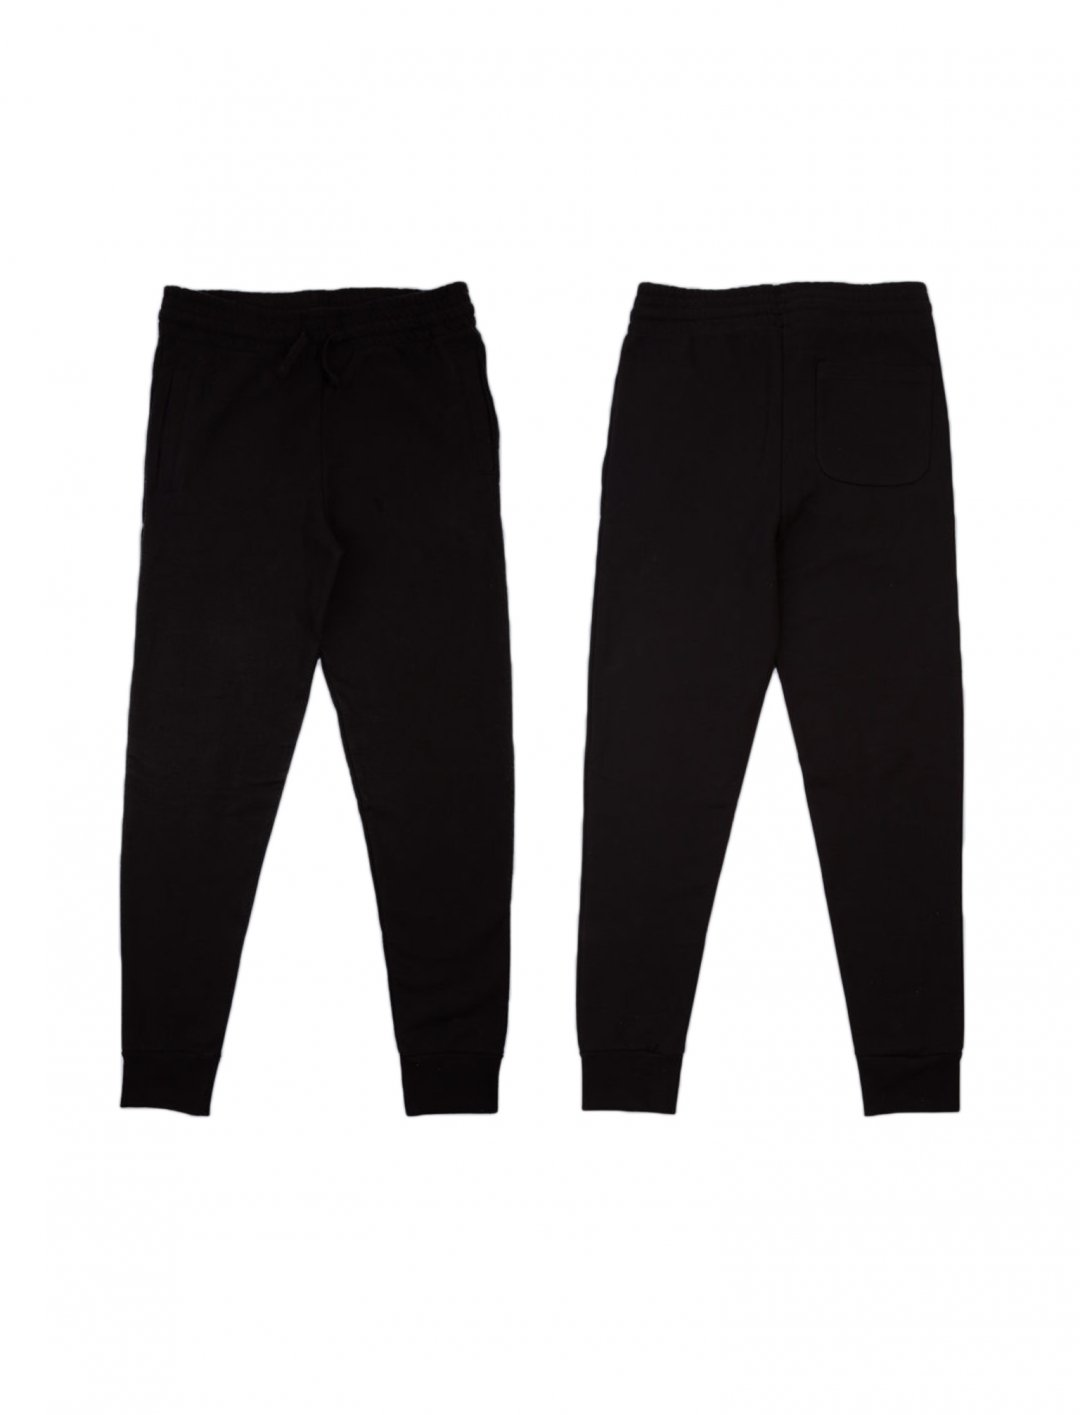 "Craig David's Track Pants {""id"":5,""product_section_id"":1,""name"":""Clothing"",""order"":5} BLANKS FACTORY"